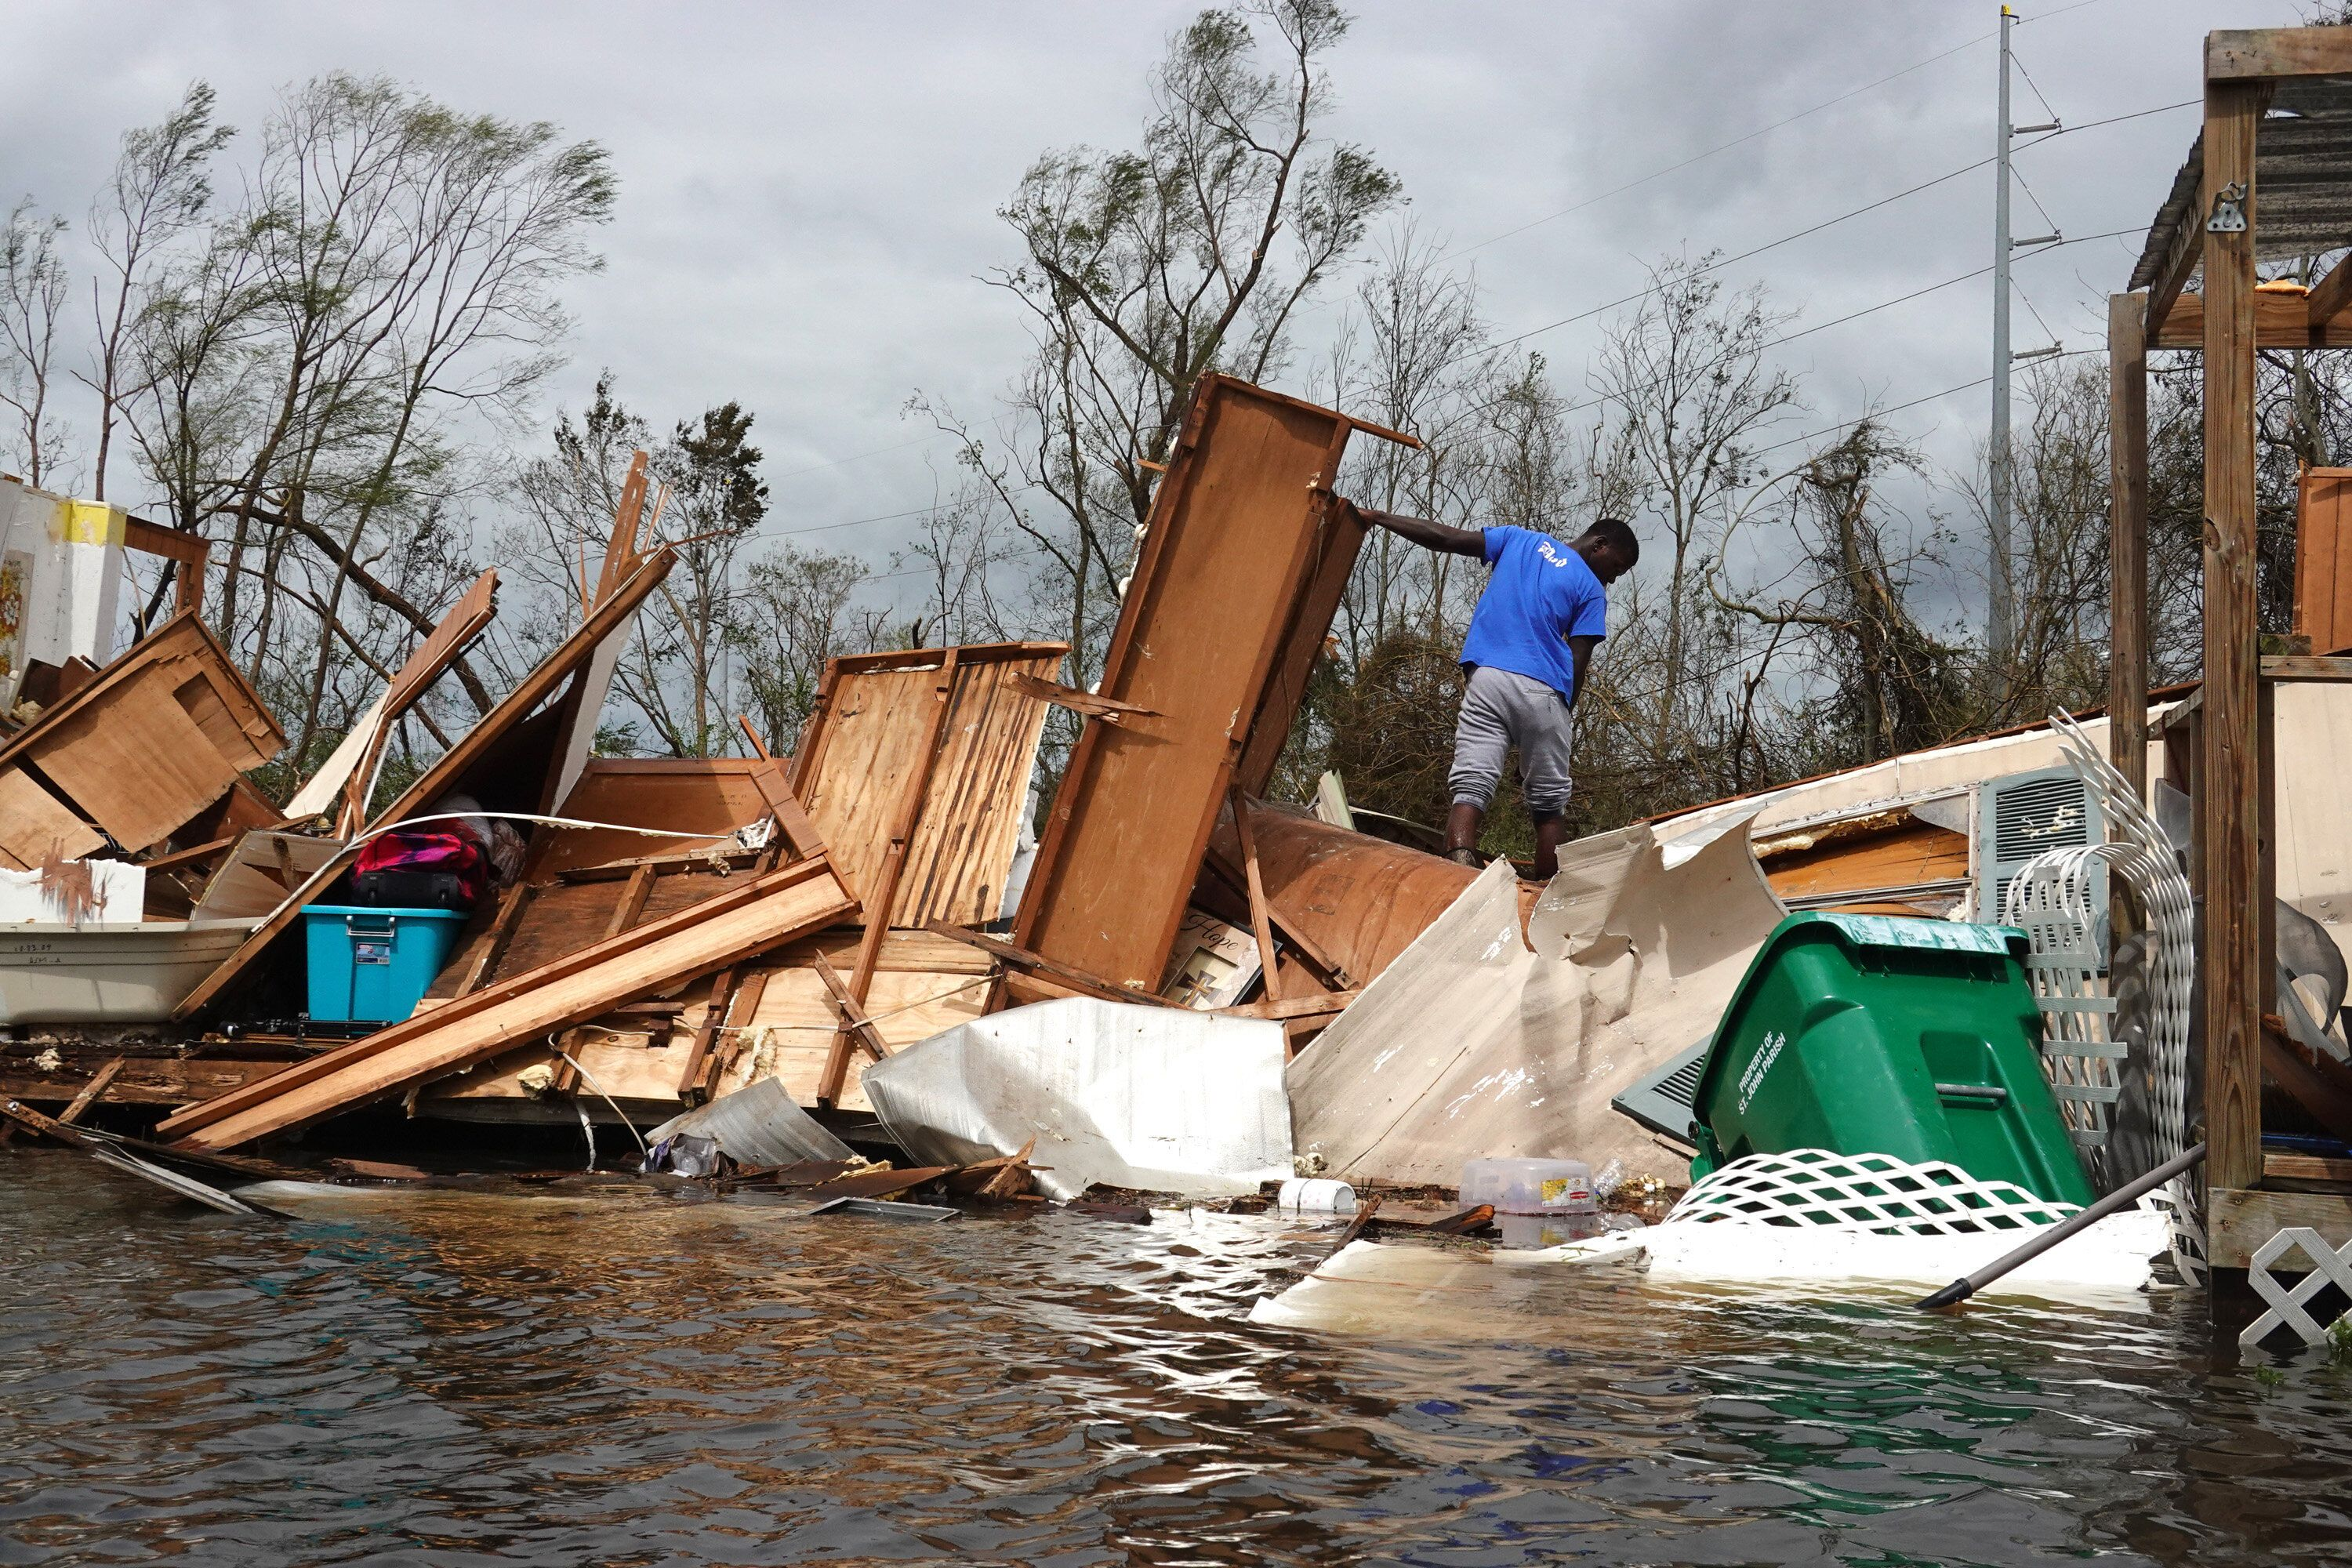 Alonzo Lewis rescues items from his mother's home after it was destroyed by Hurricane Ida on Aug. 30, 2021, in Laplace, Louis